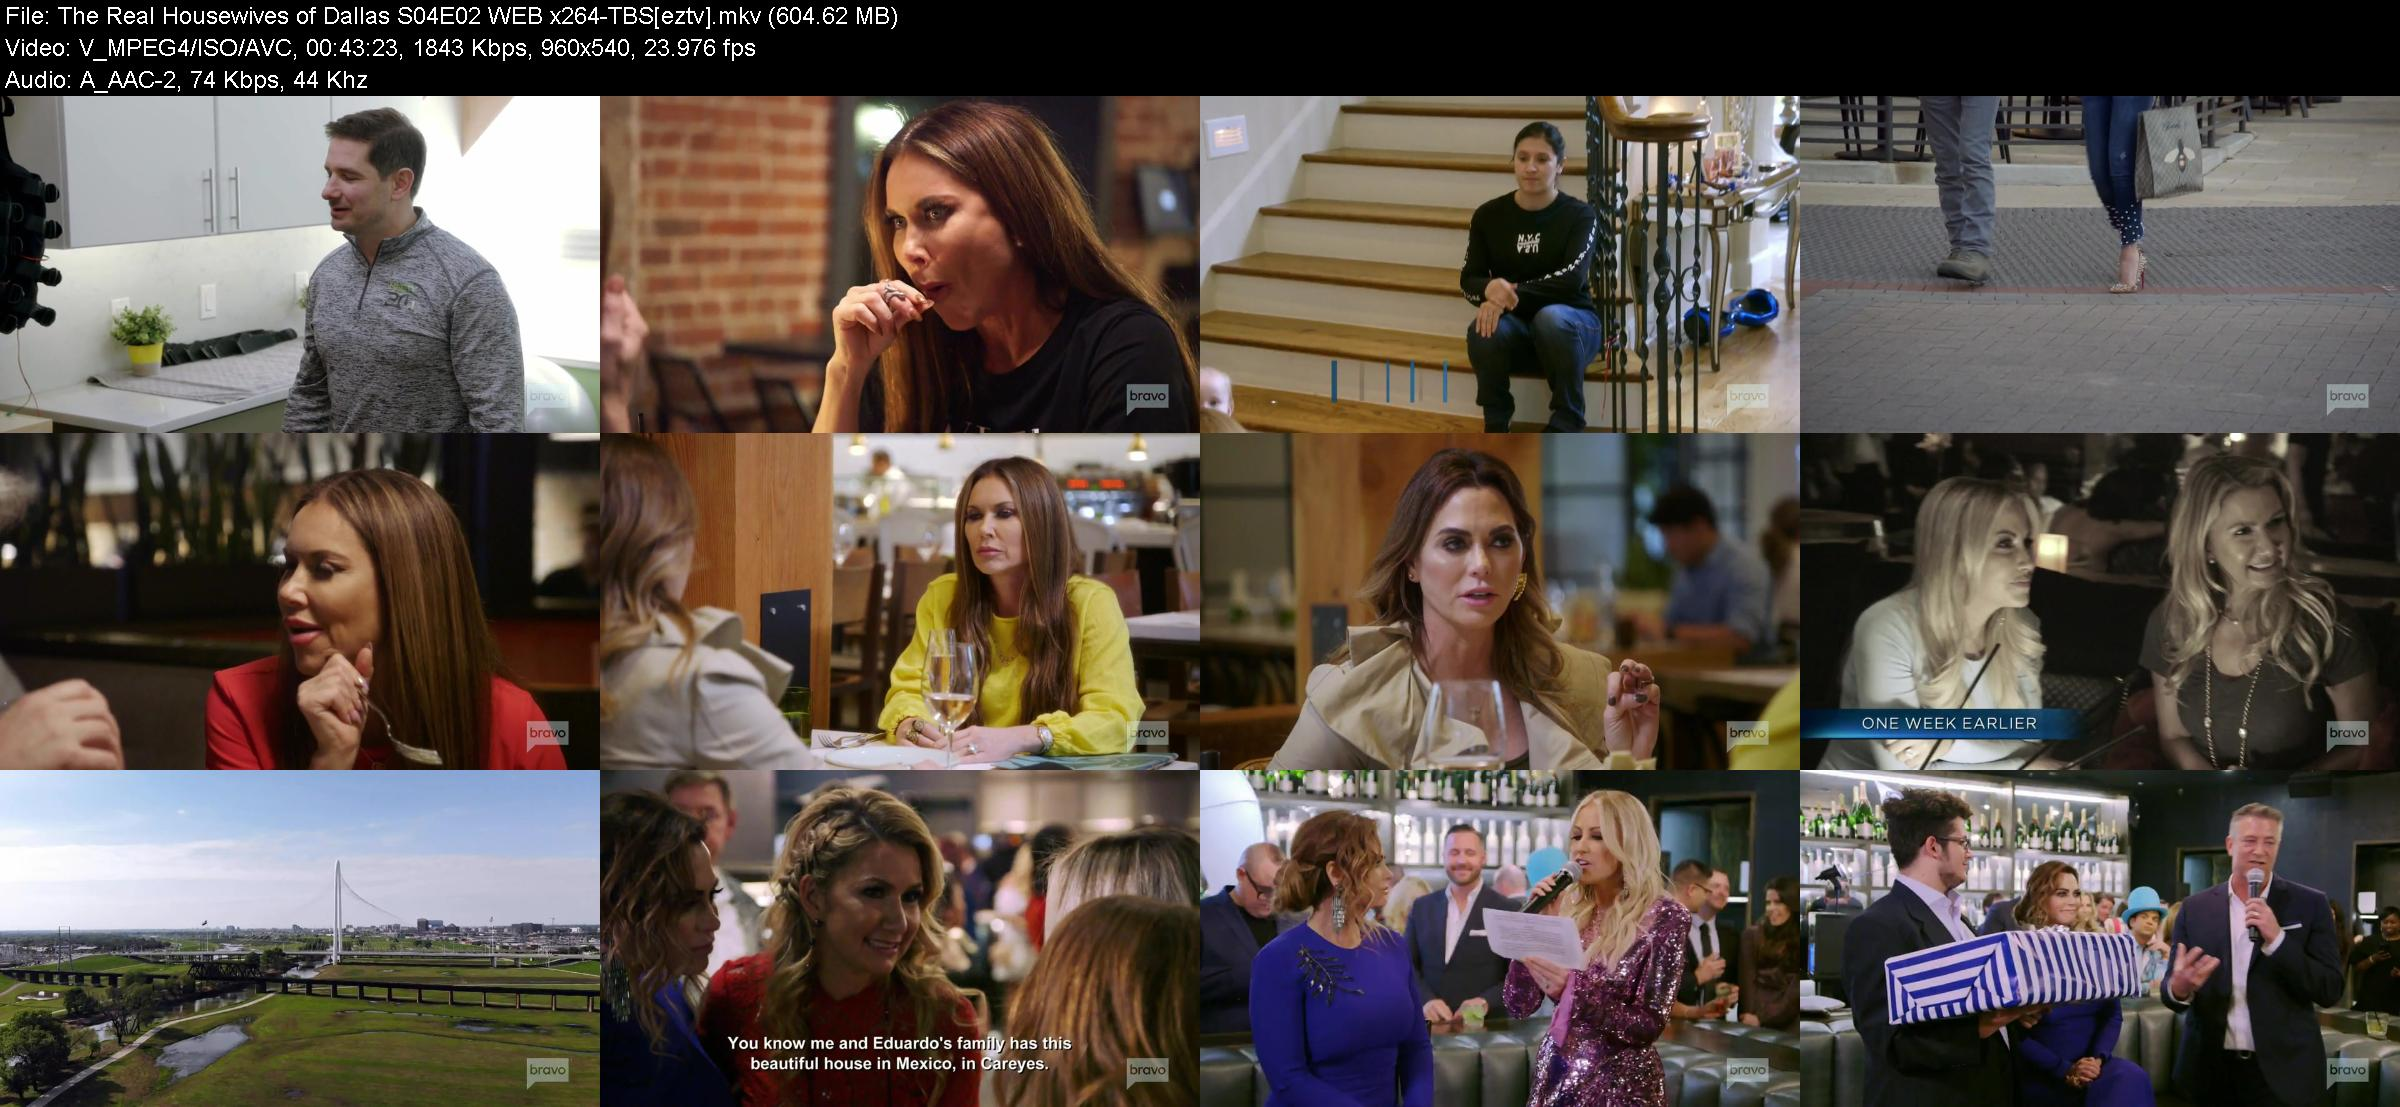 The Real Housewives of Dallas S04E02 WEB x264 TBS